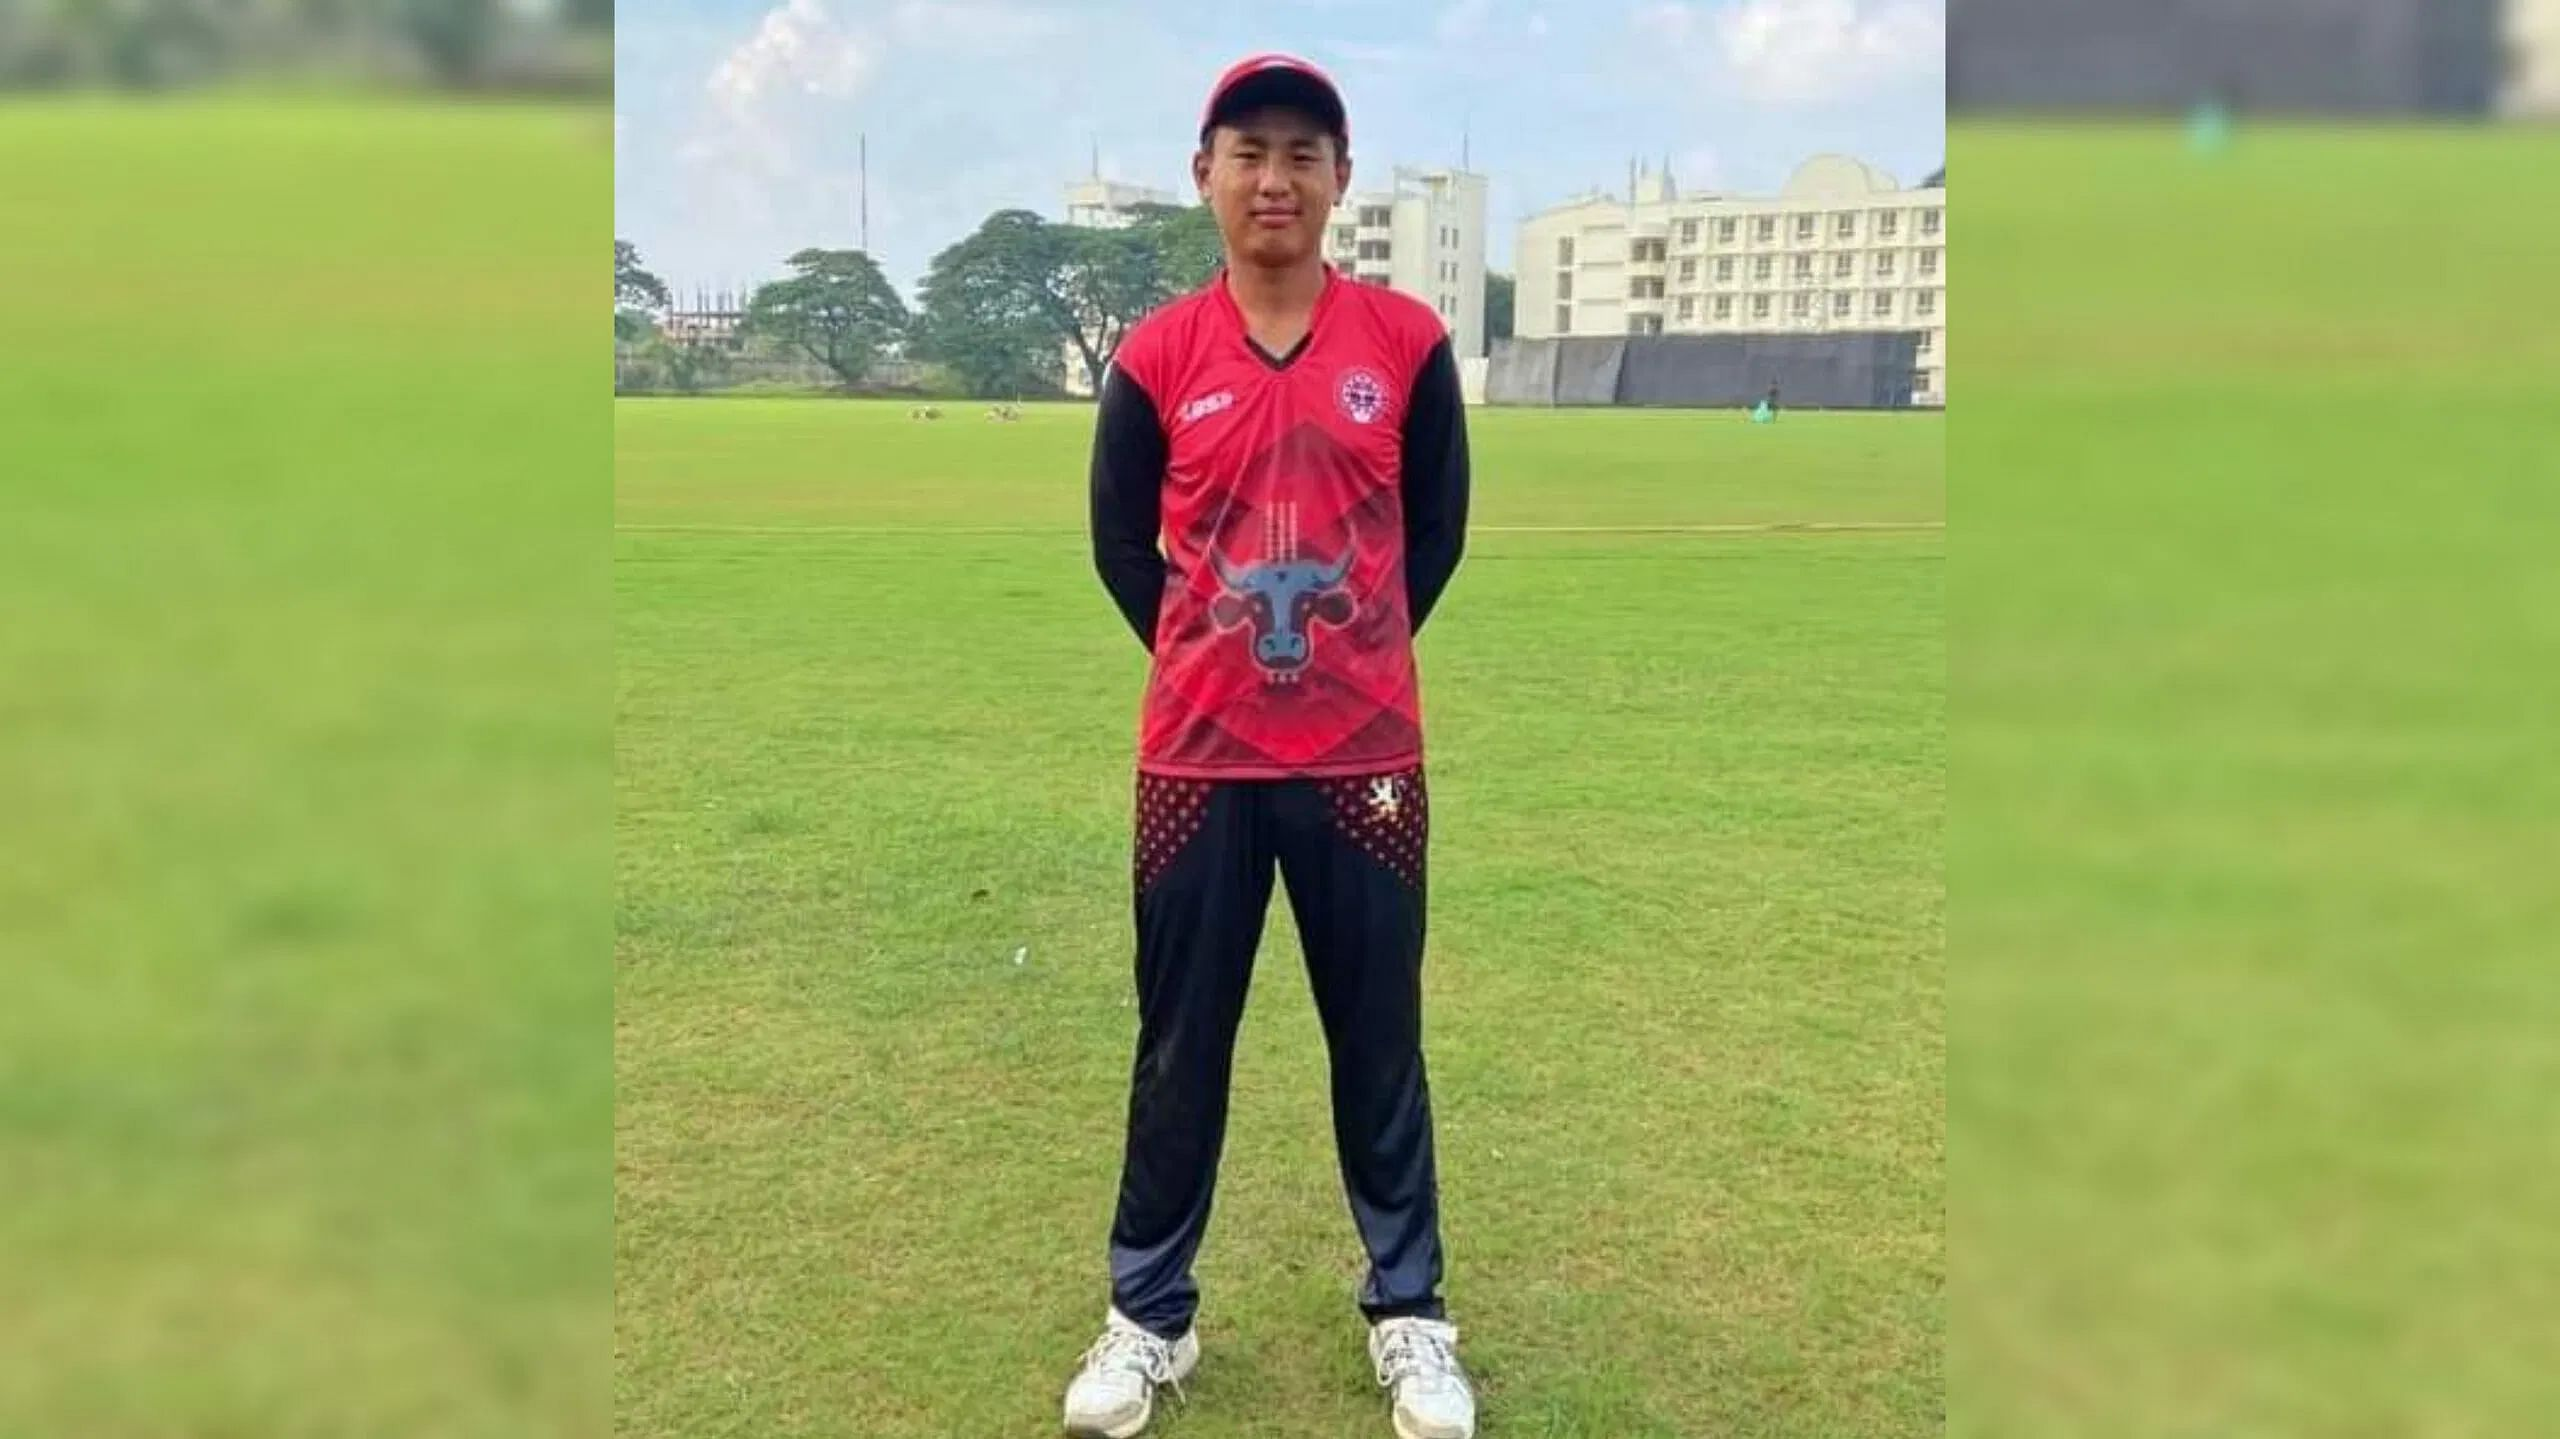 Mumbai Indians select 16-year-old spinner from Nagaland as support player for IPL 2021